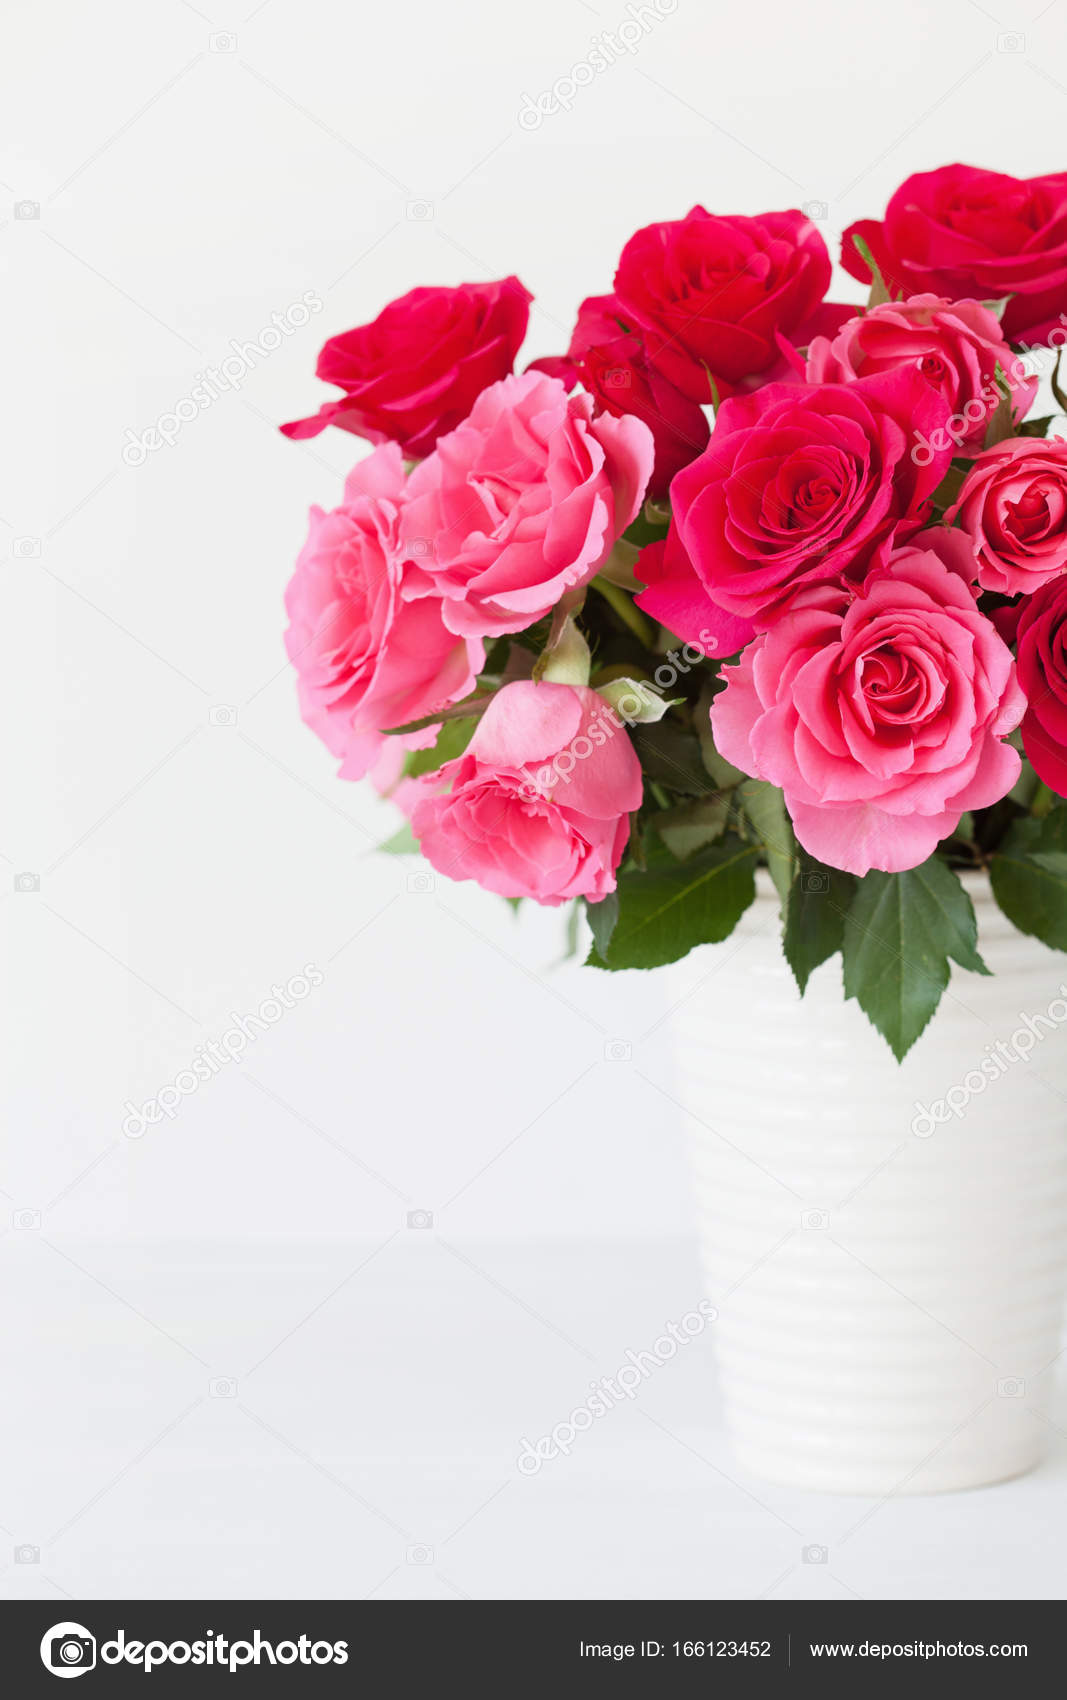 Beautiful Red Rose Flowers Bouquet In Vase Over White Stock Photo Image By C Duskbabe 166123452